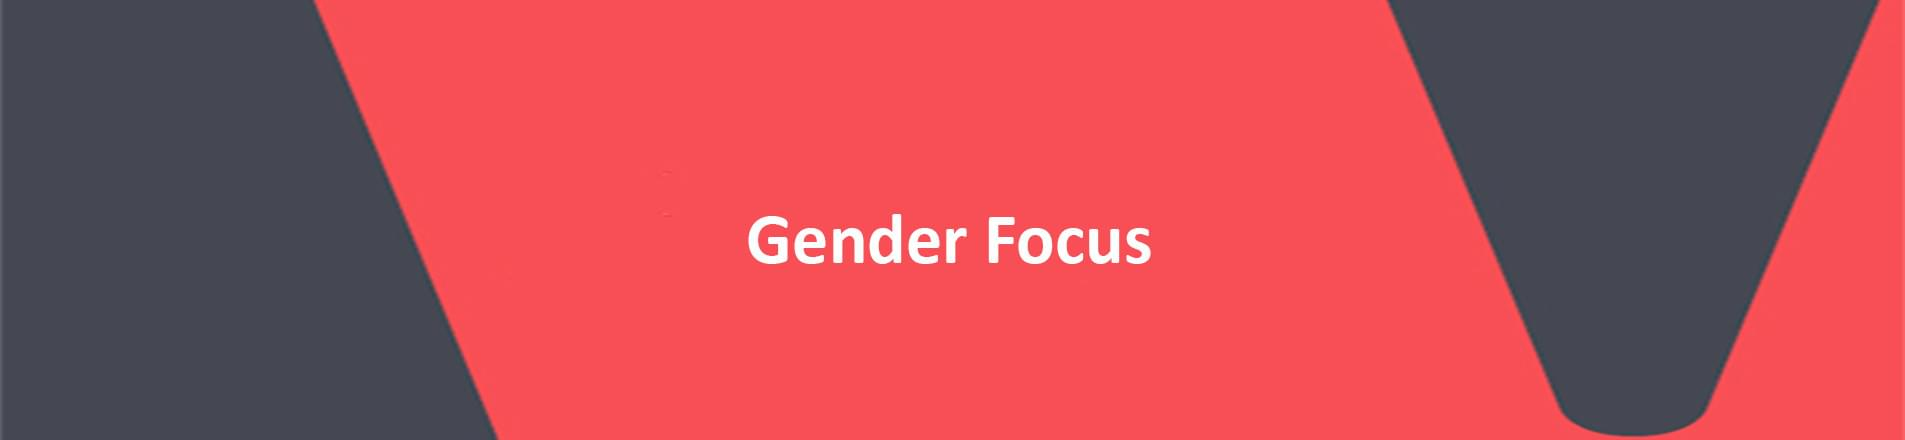 """Image VERCIDA banner.  Red background with """"Gender Focus"""" spelled in white letters."""